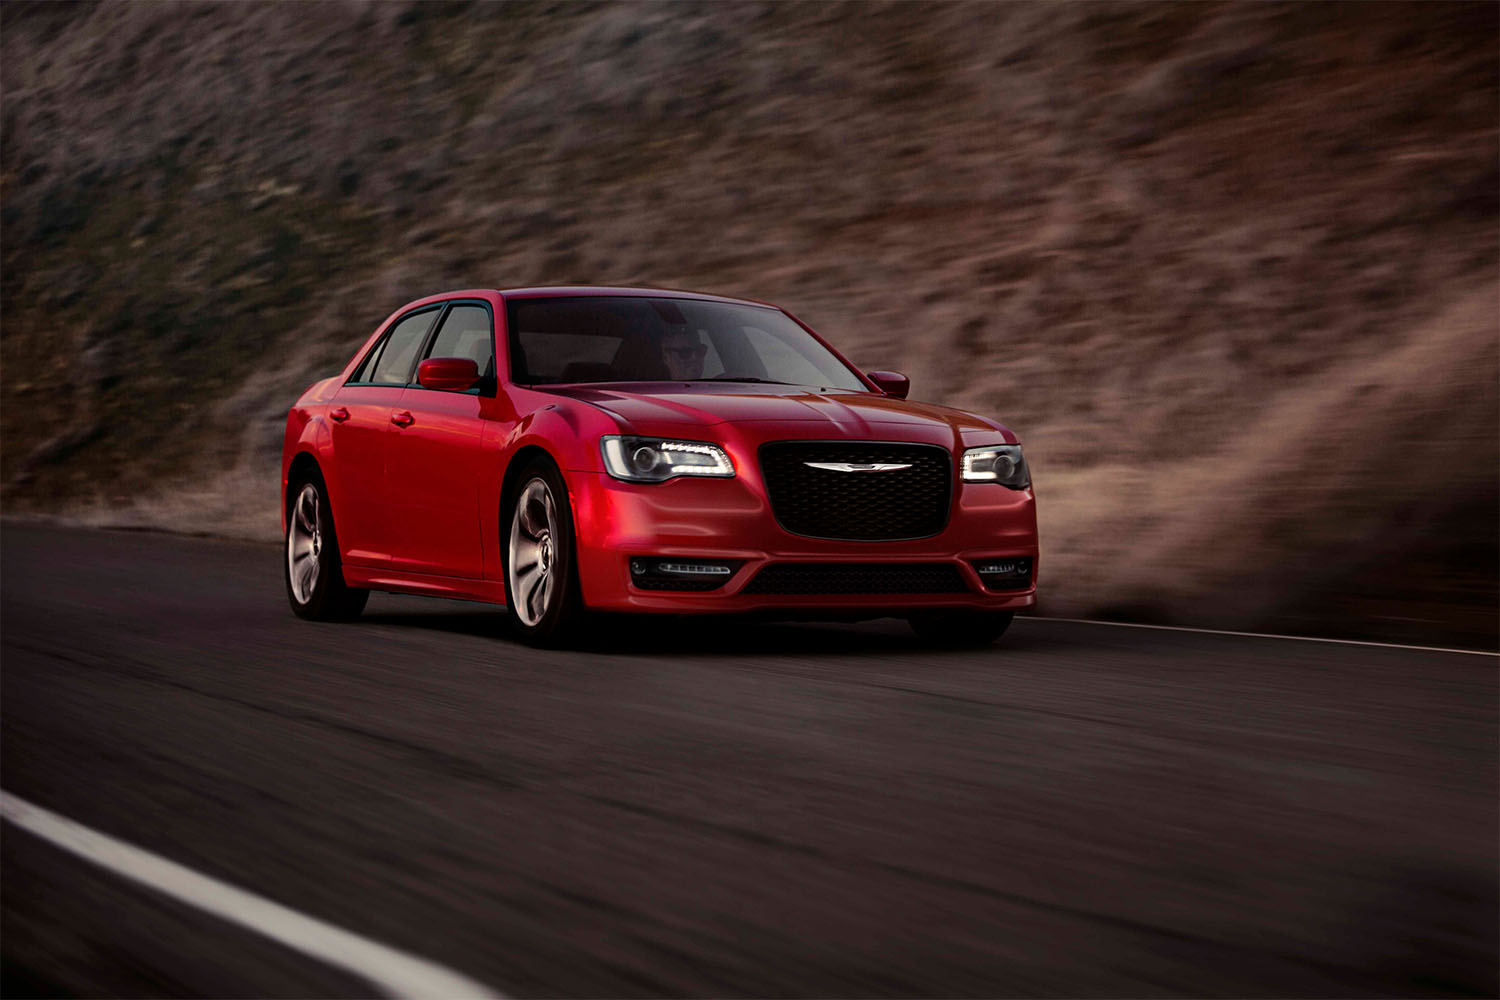 New Chrysler available in Superior, WI at Superior Chrysler Dodge Jeep Ram